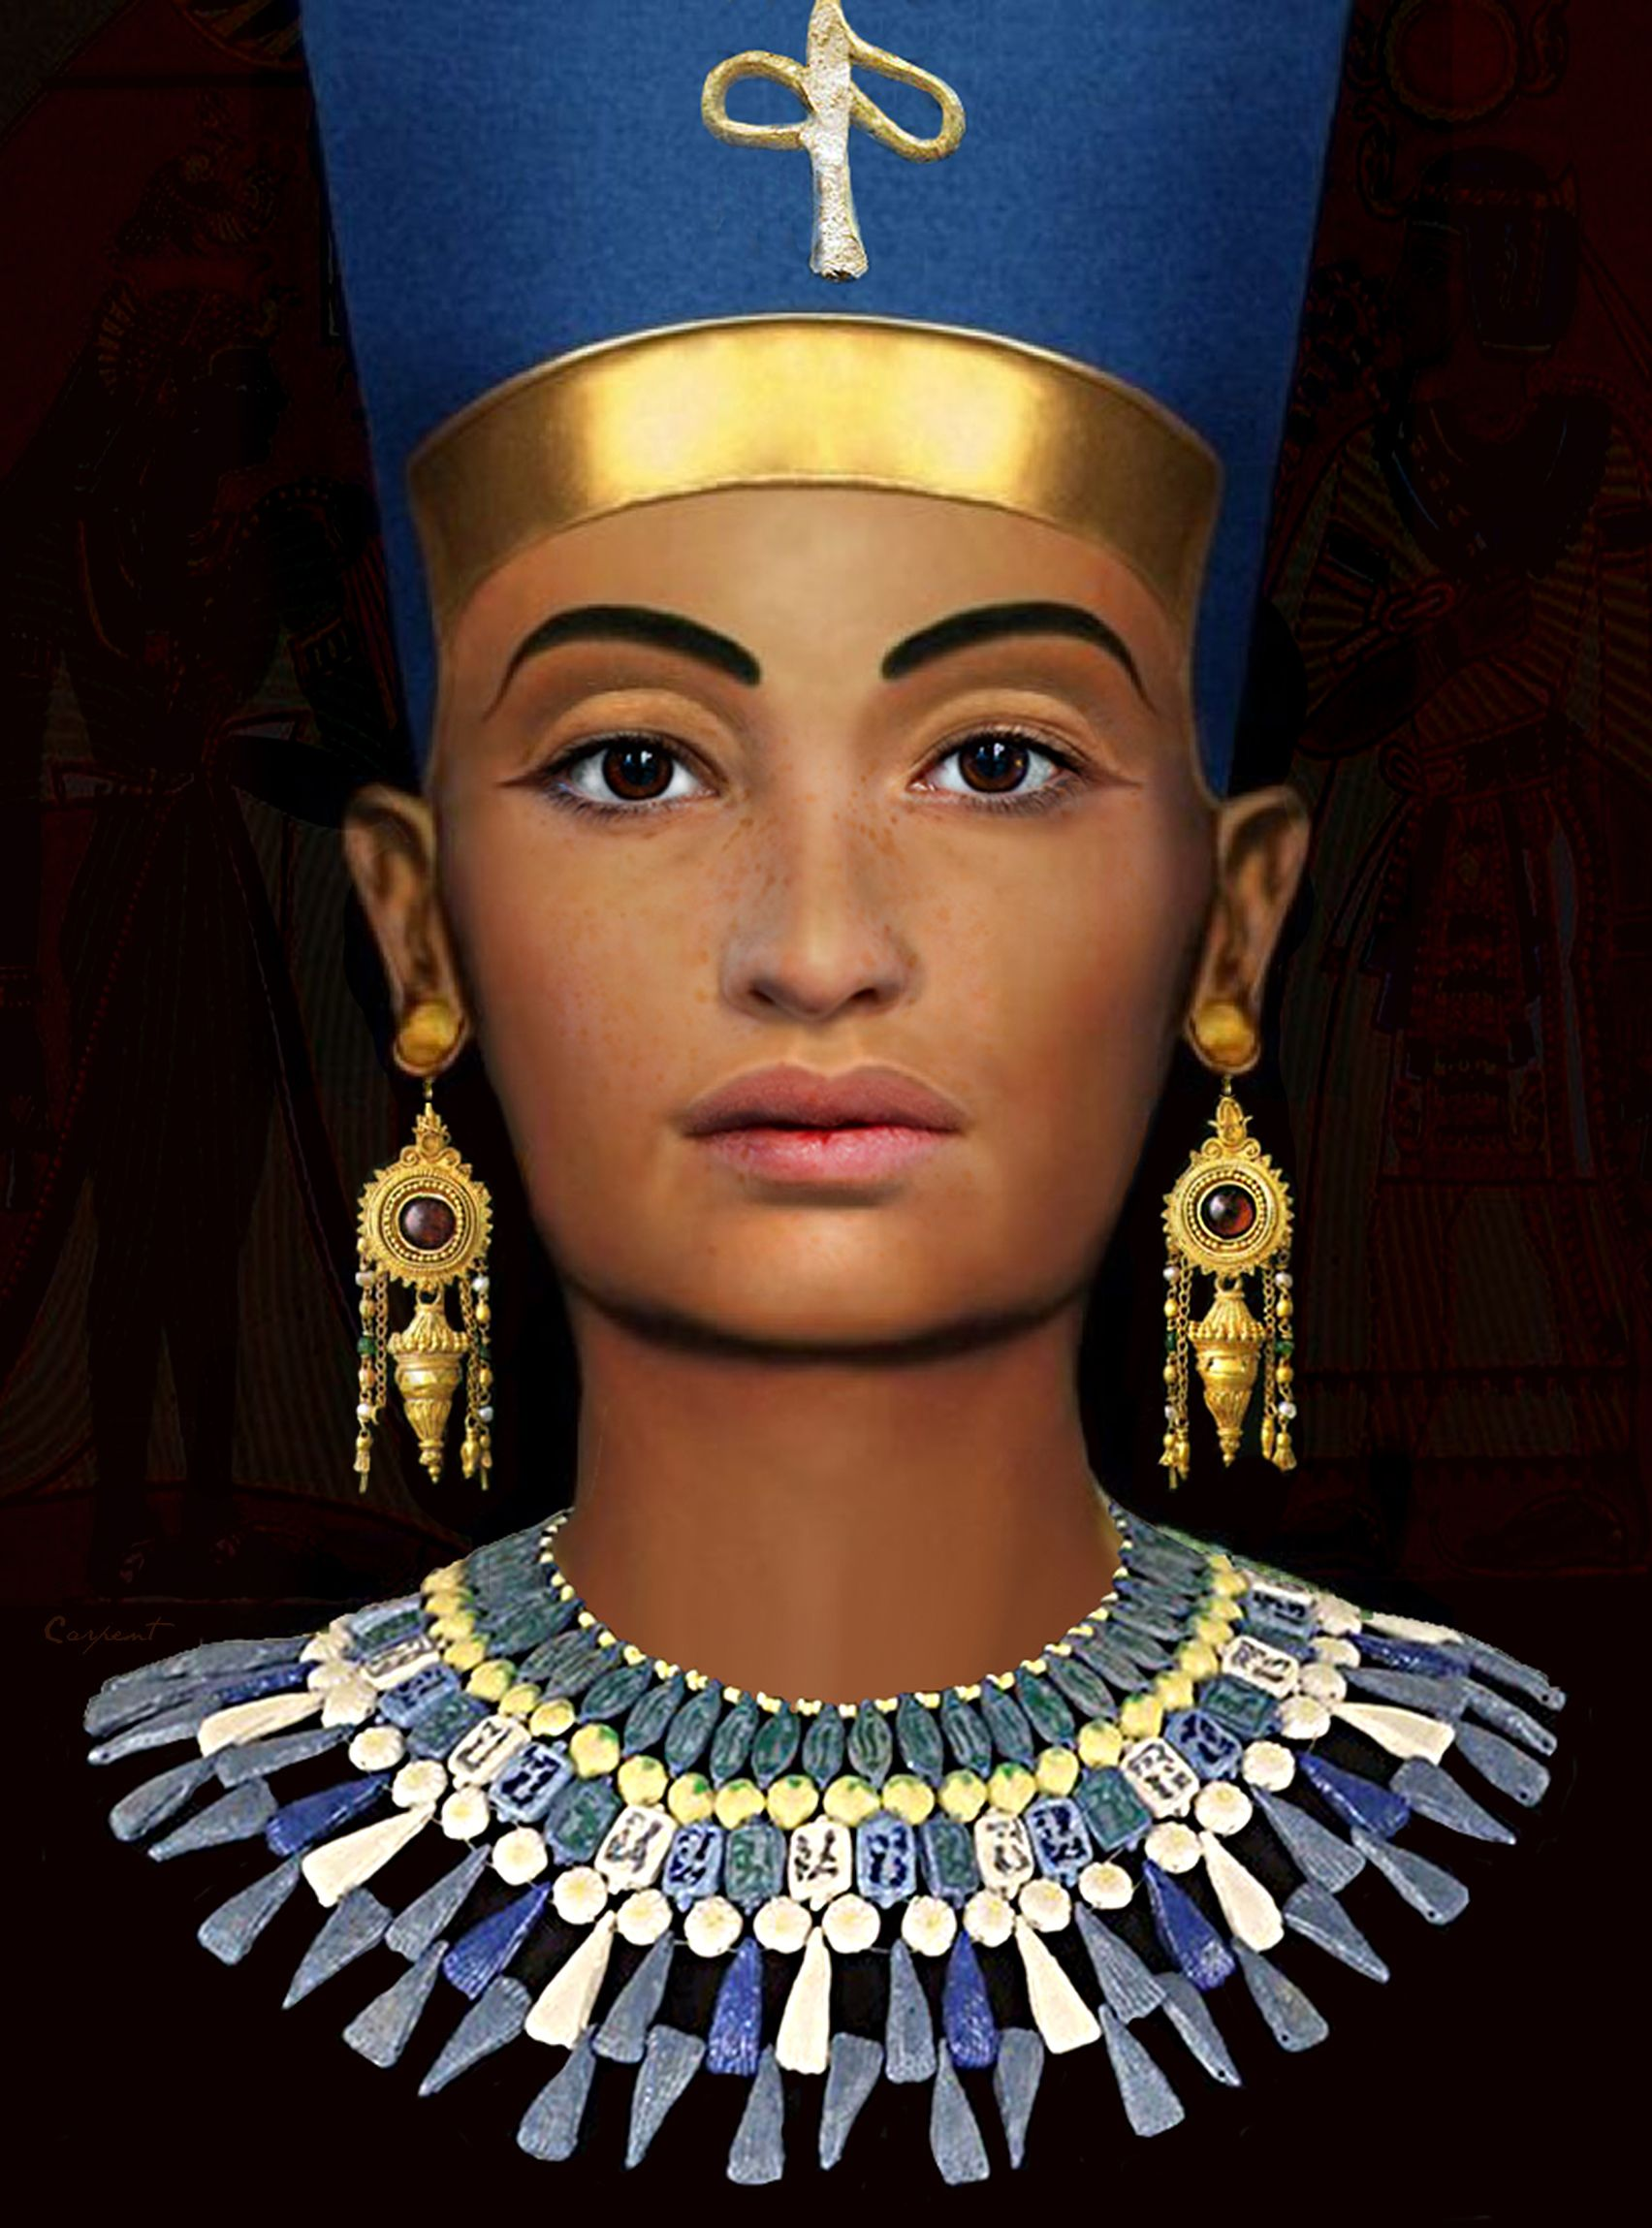 Eyeshadow Tut: Pharaoh Tutankhamun's Wife, Queen Ankhesenamun(1348-1322